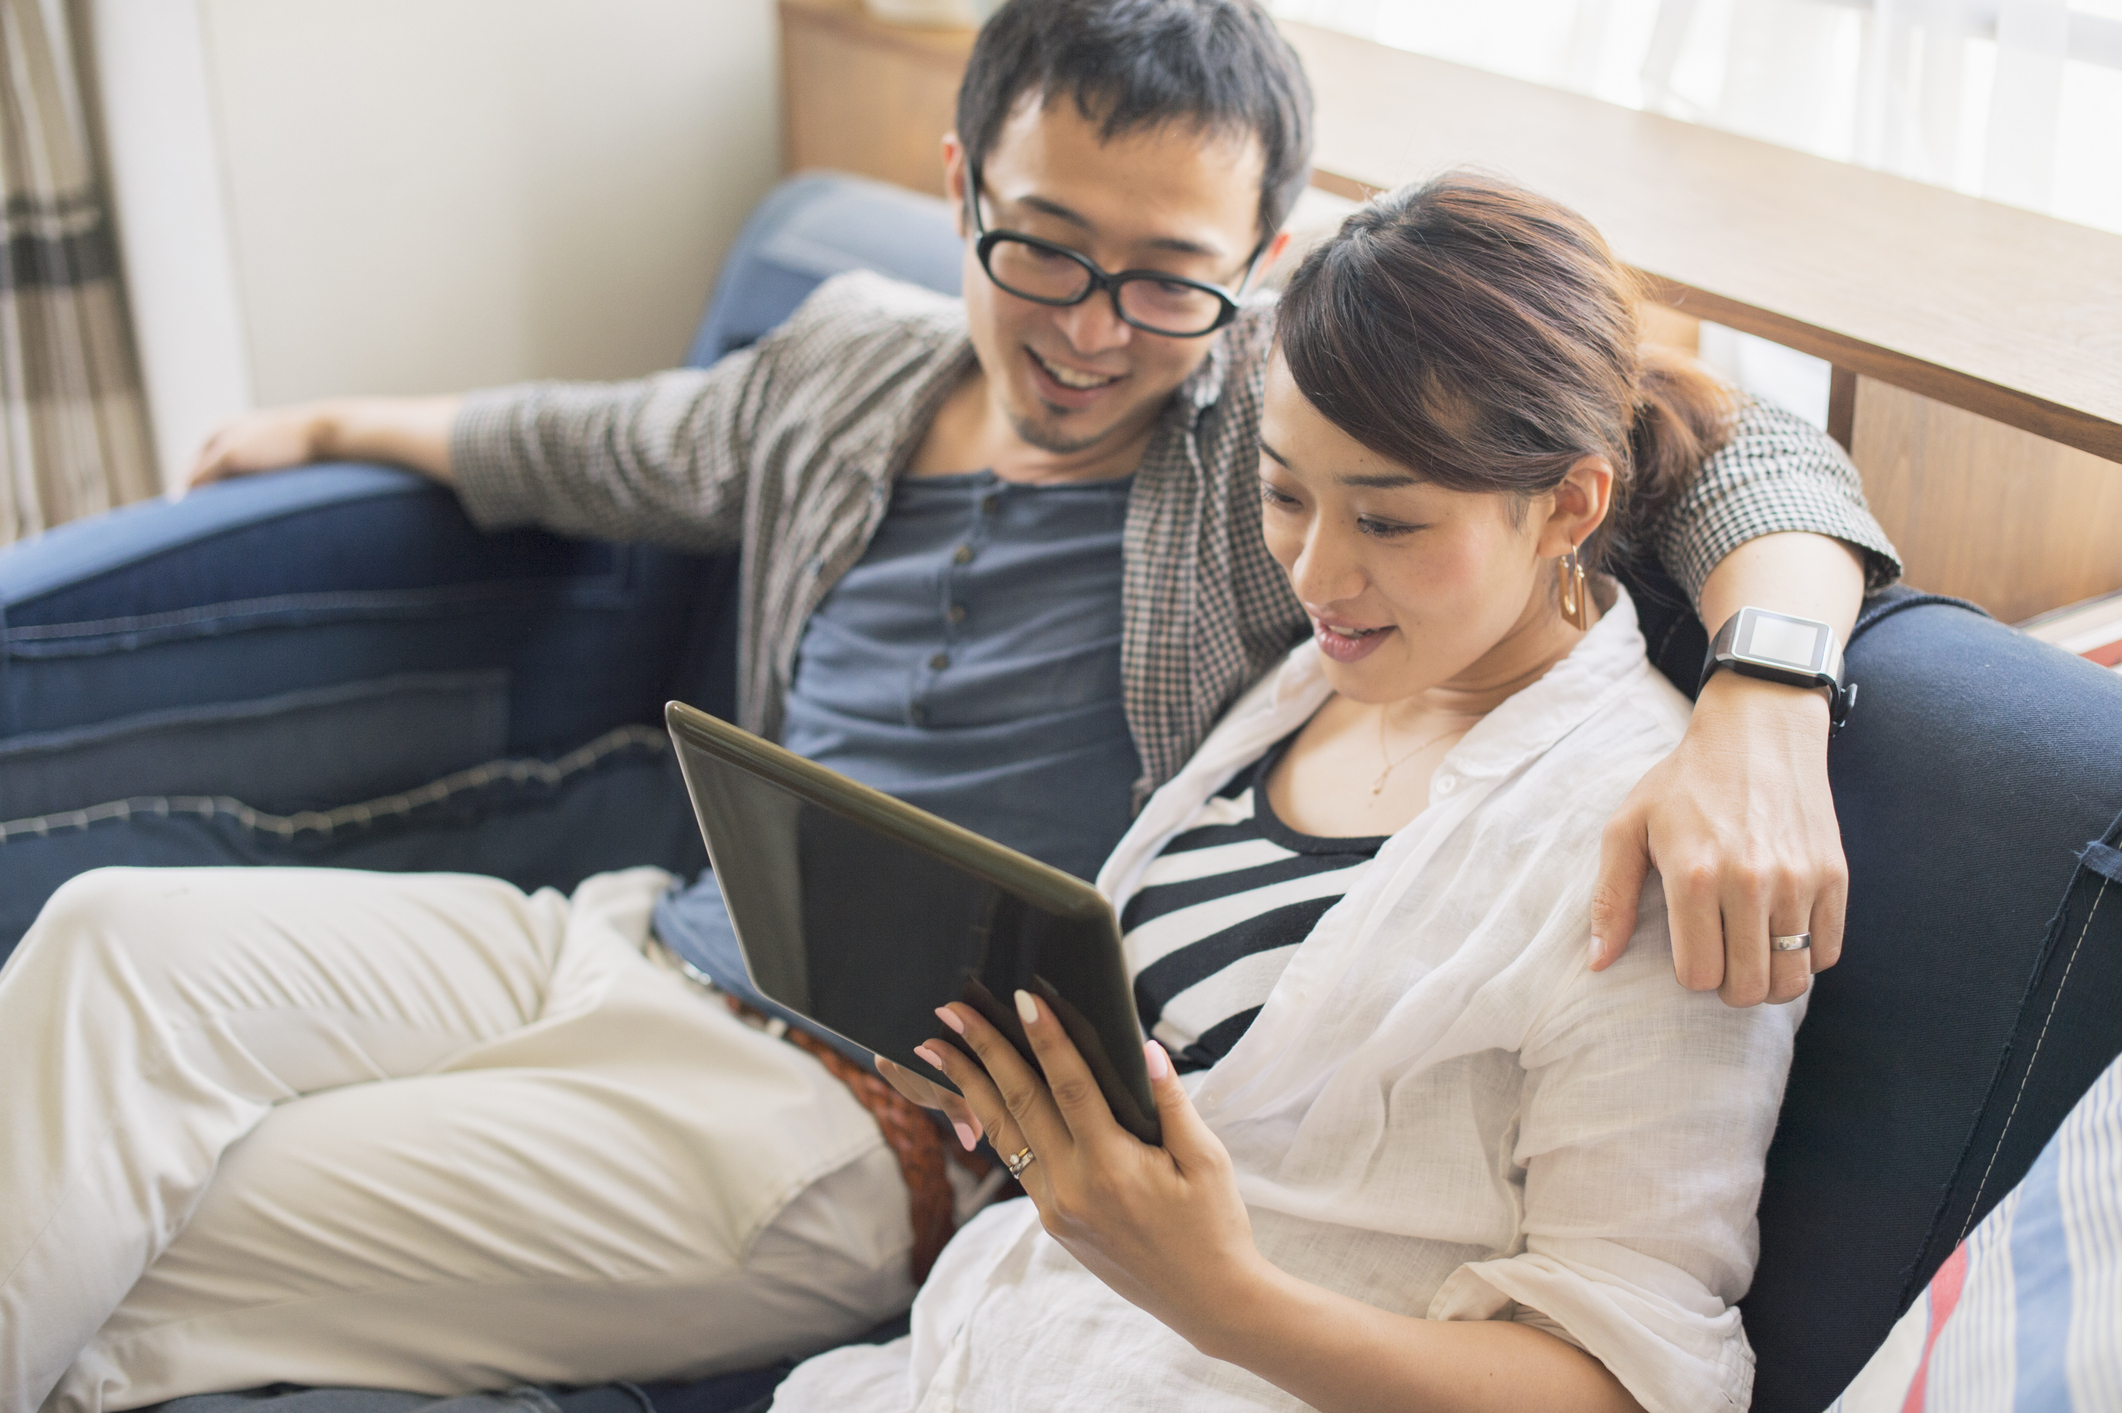 Stock photo of man and woman looking at a tablet and smiling